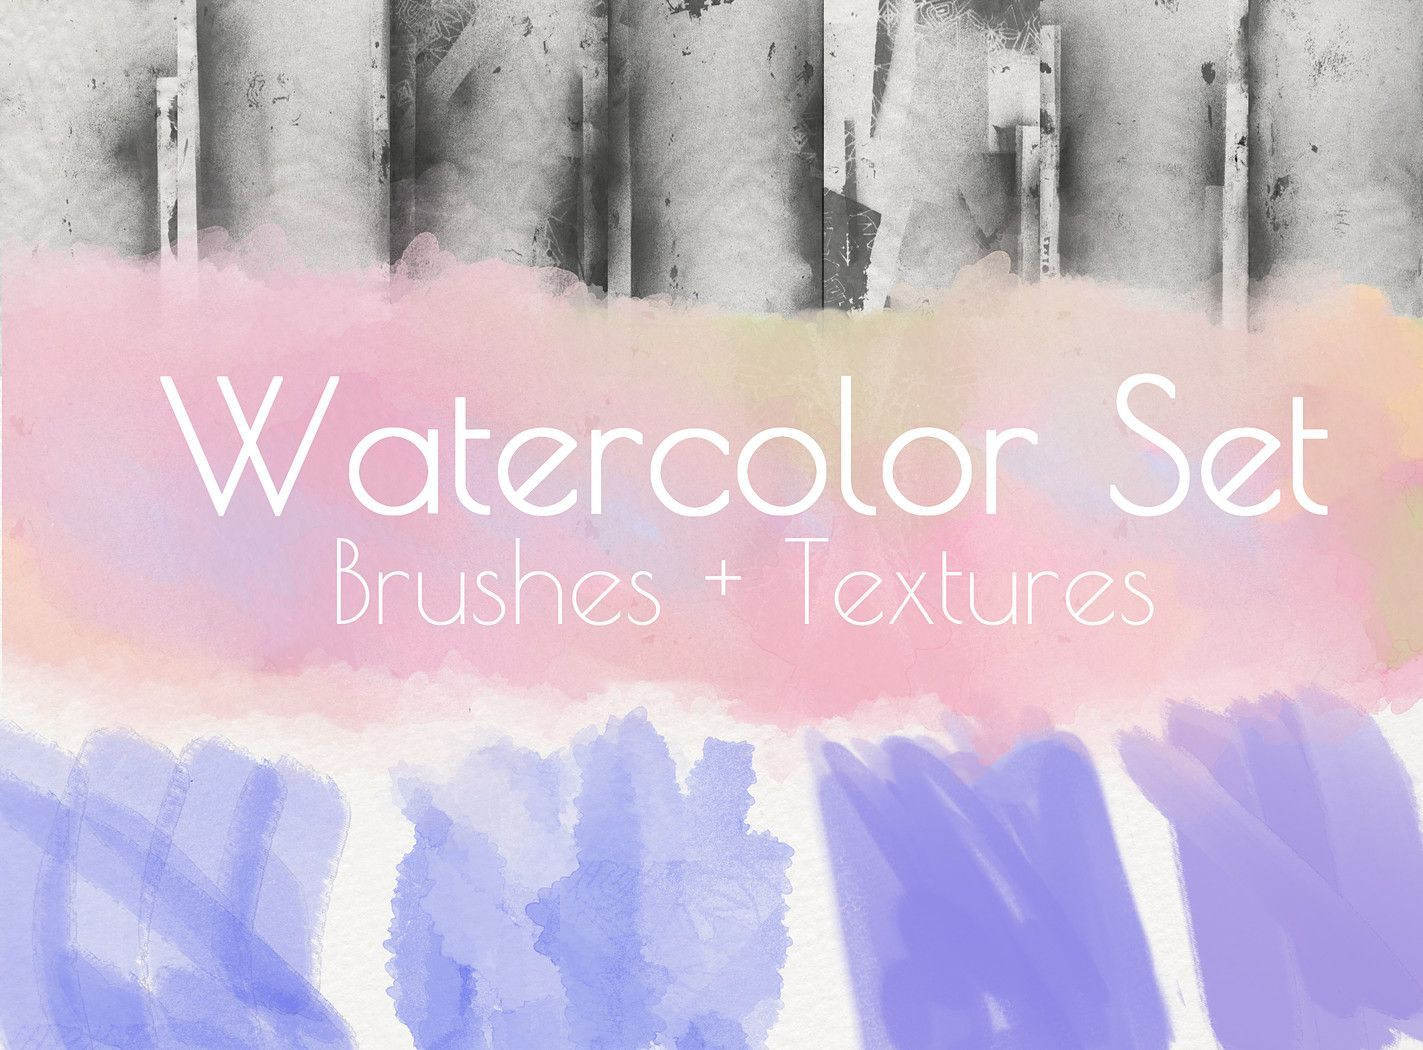 Watercolour Brushes And Textures For Photoshop Http Cbr Sh